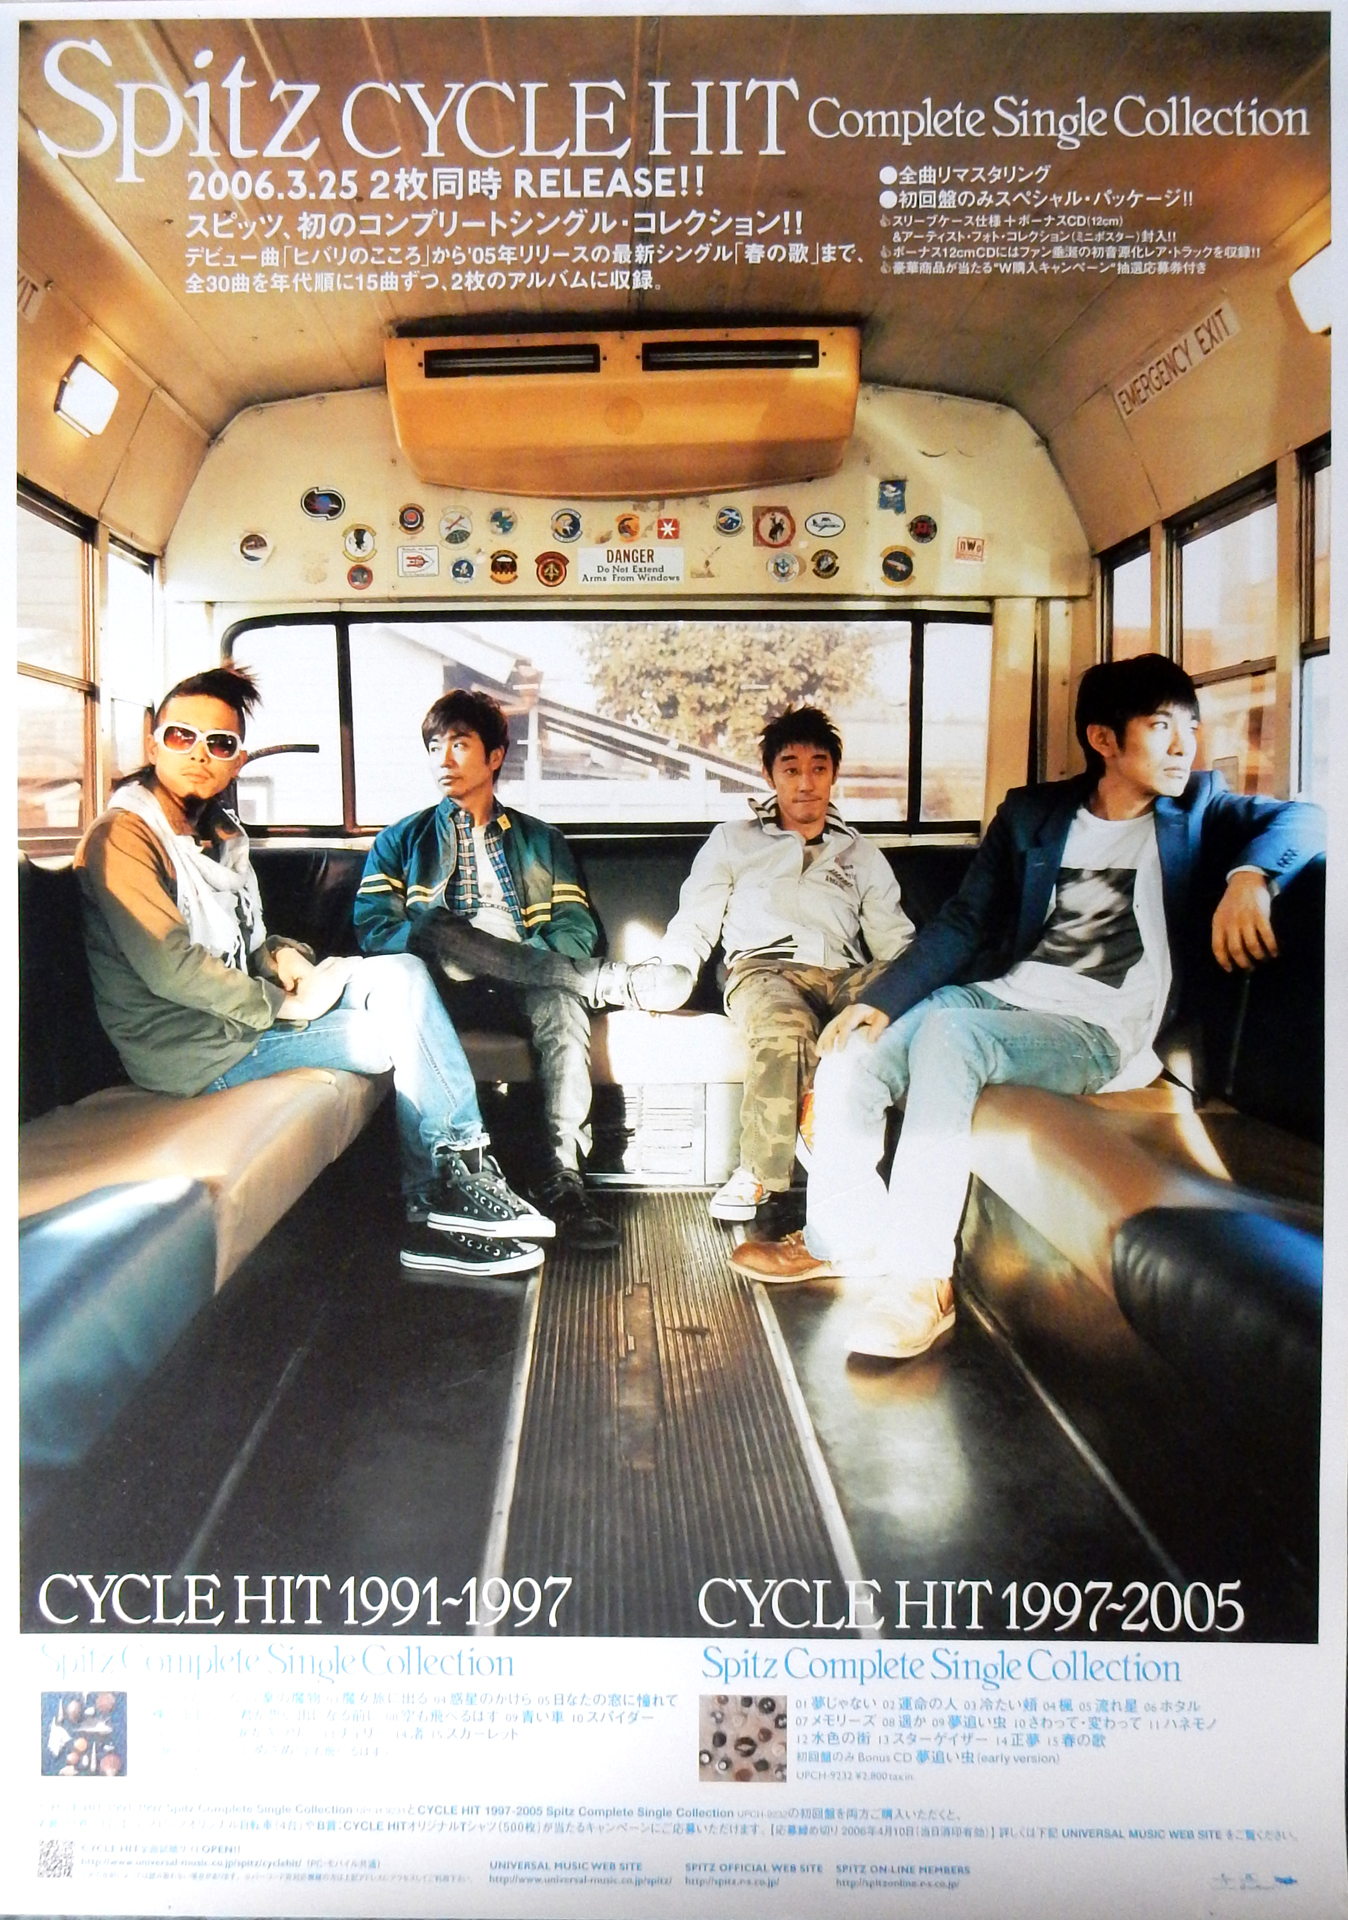 スピッツ 「CYCLE HIT 1991−1997 Spitz Complete Single Collection」のポスター